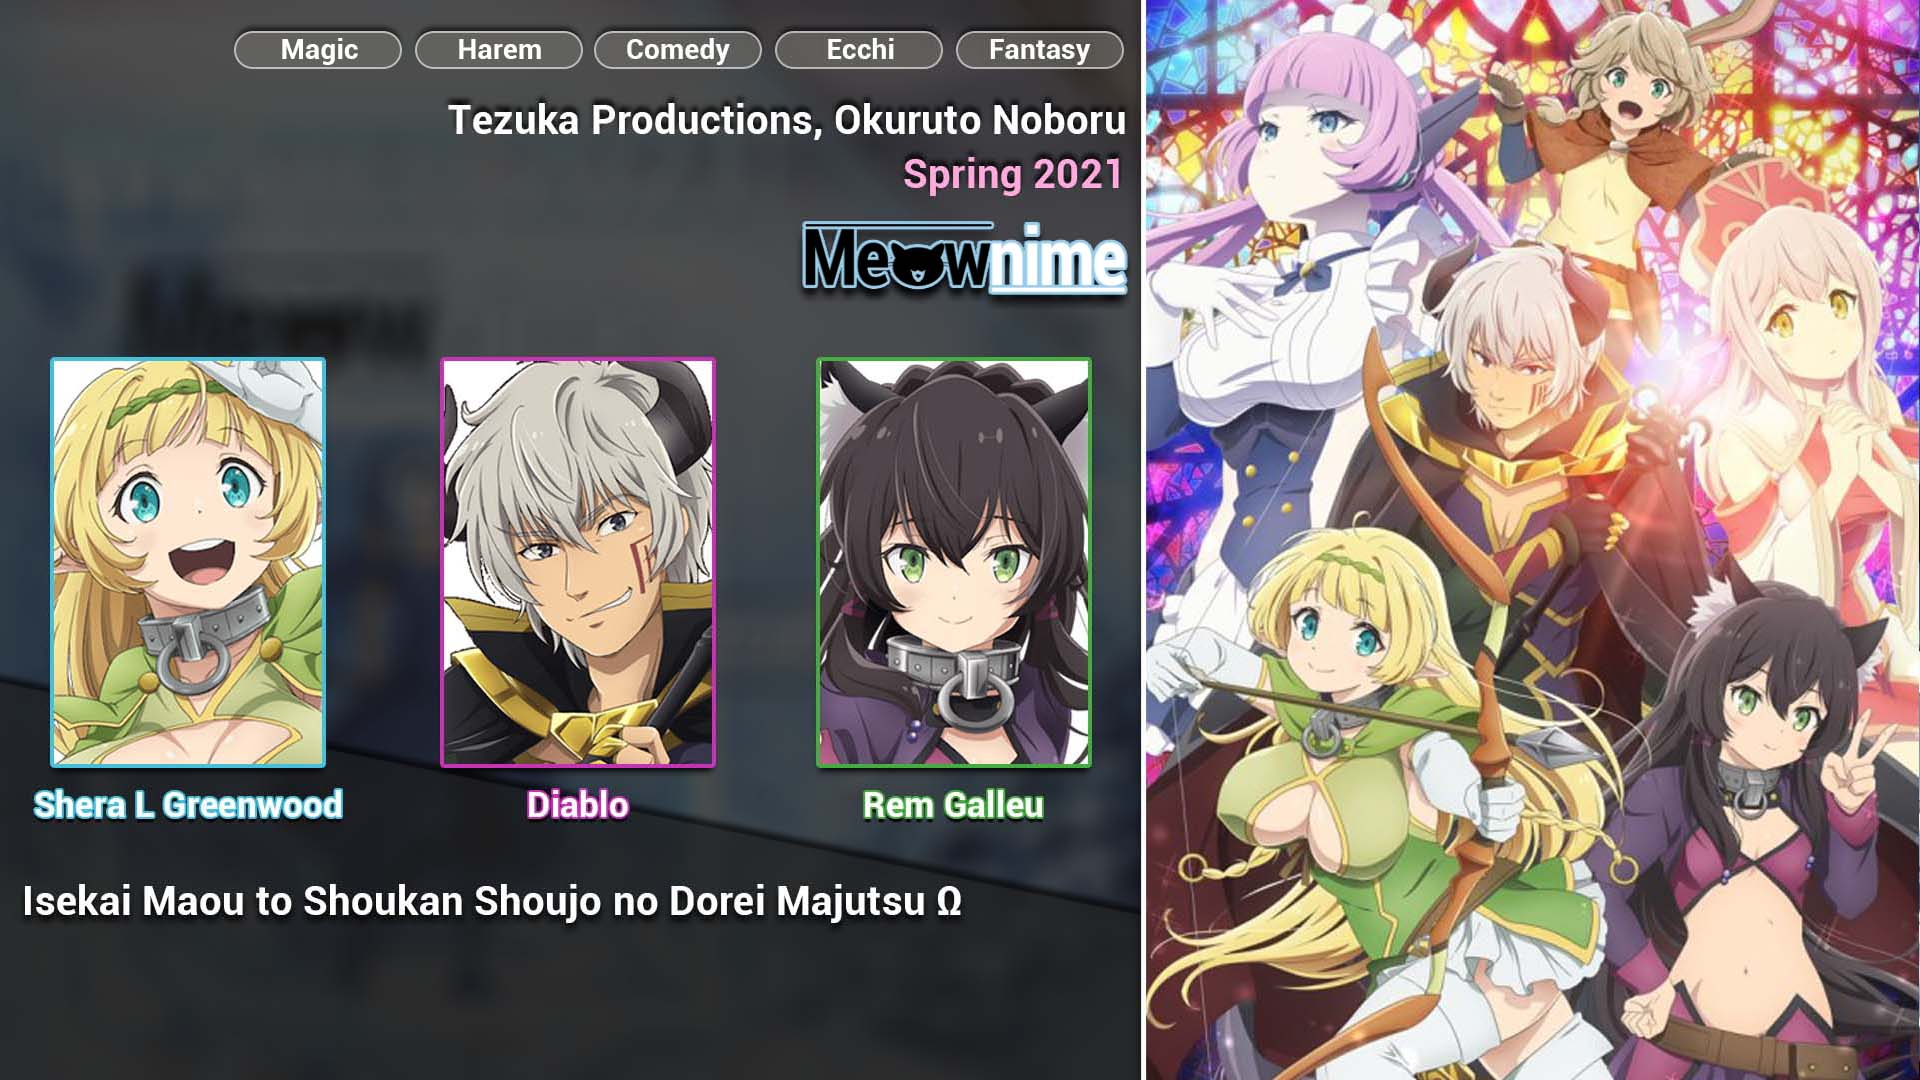 Isekai Maou to Shoukan Shoujo no Dorei Majutsu Season 2